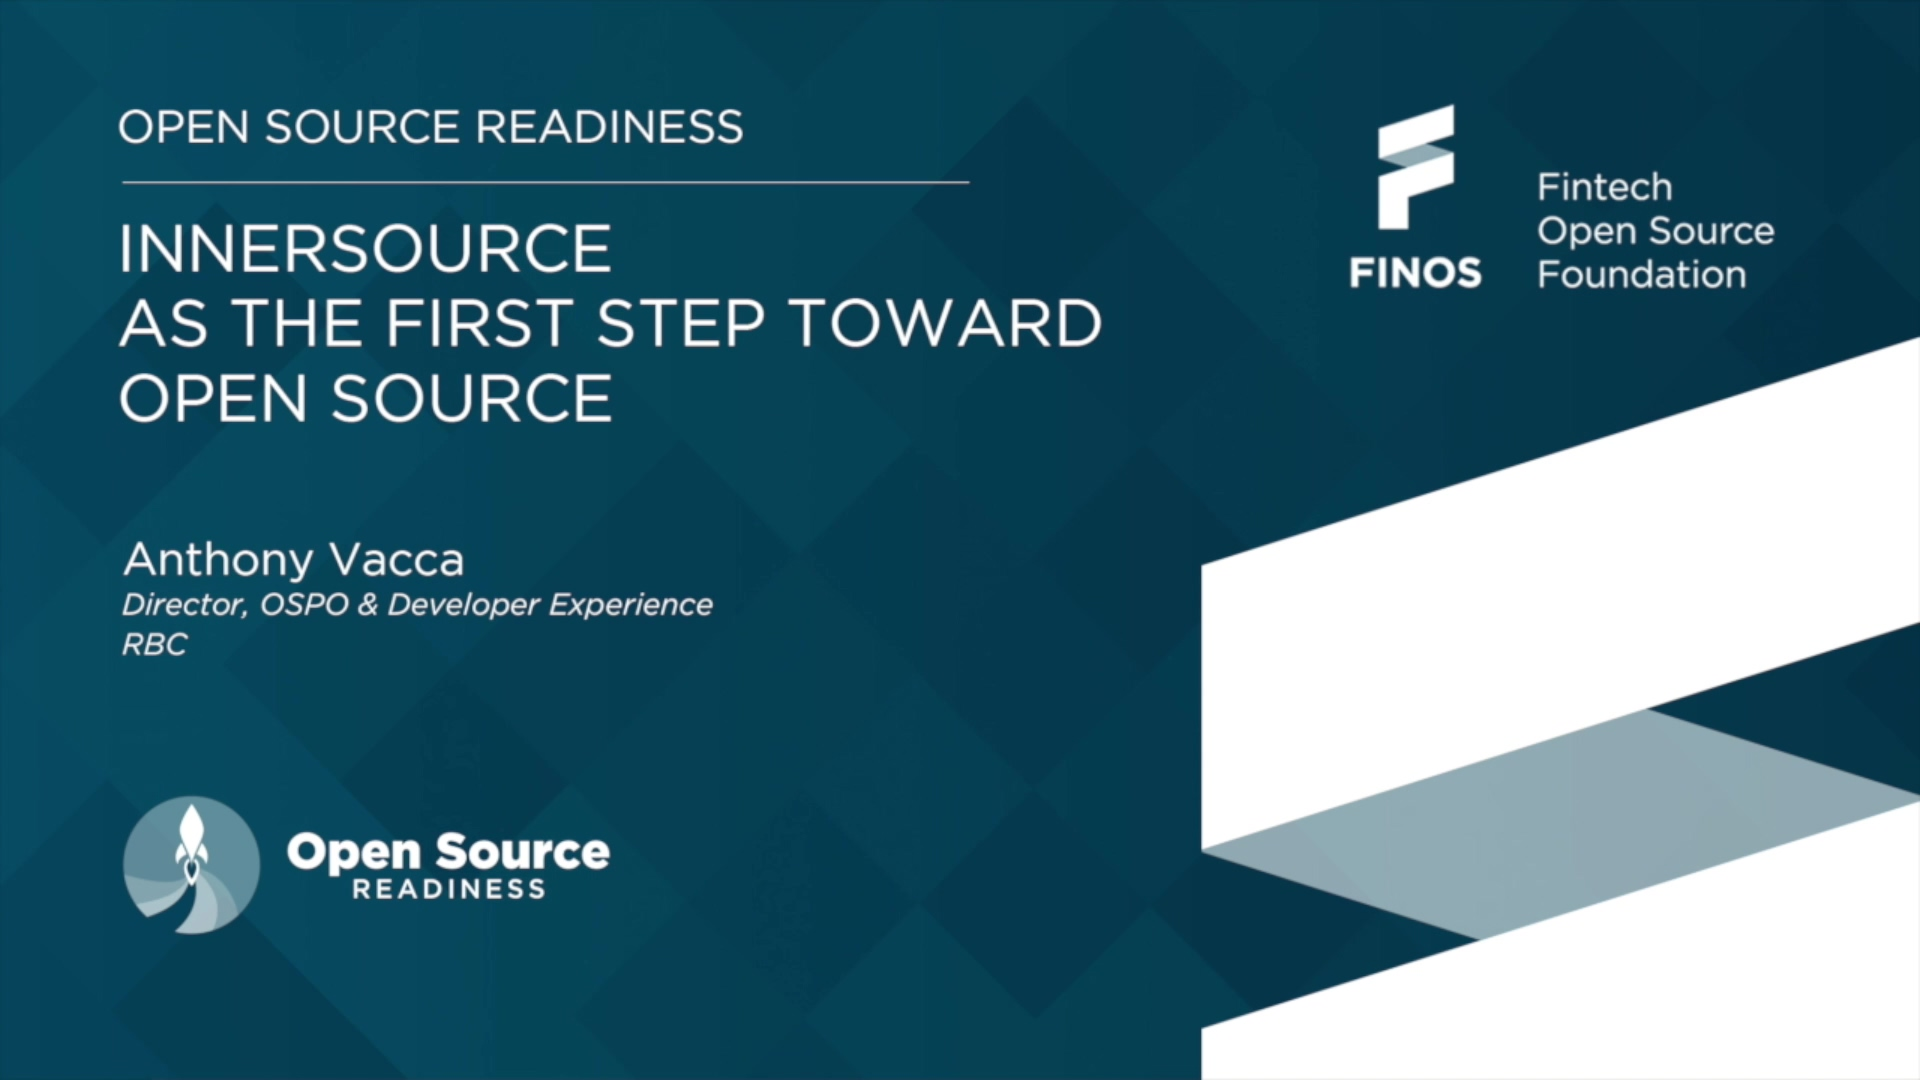 FINOS Open Source Readiness - Anthony Vacca 02 SEP 20